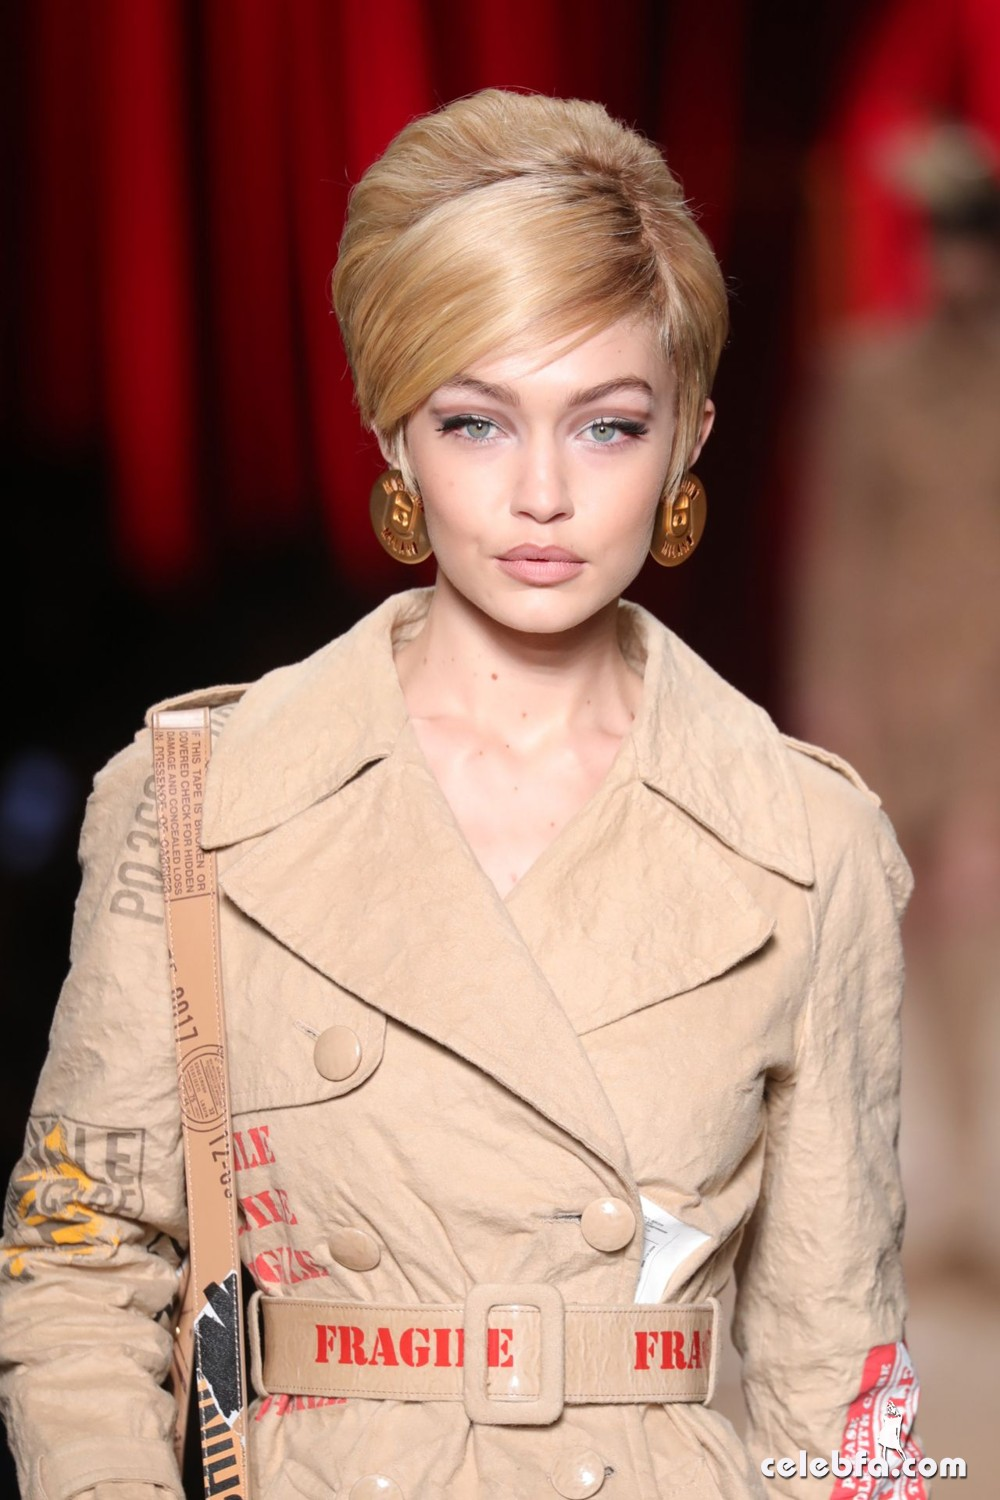 gigi-hadid-walks-moschino-s-show-milan-fashion-week-1